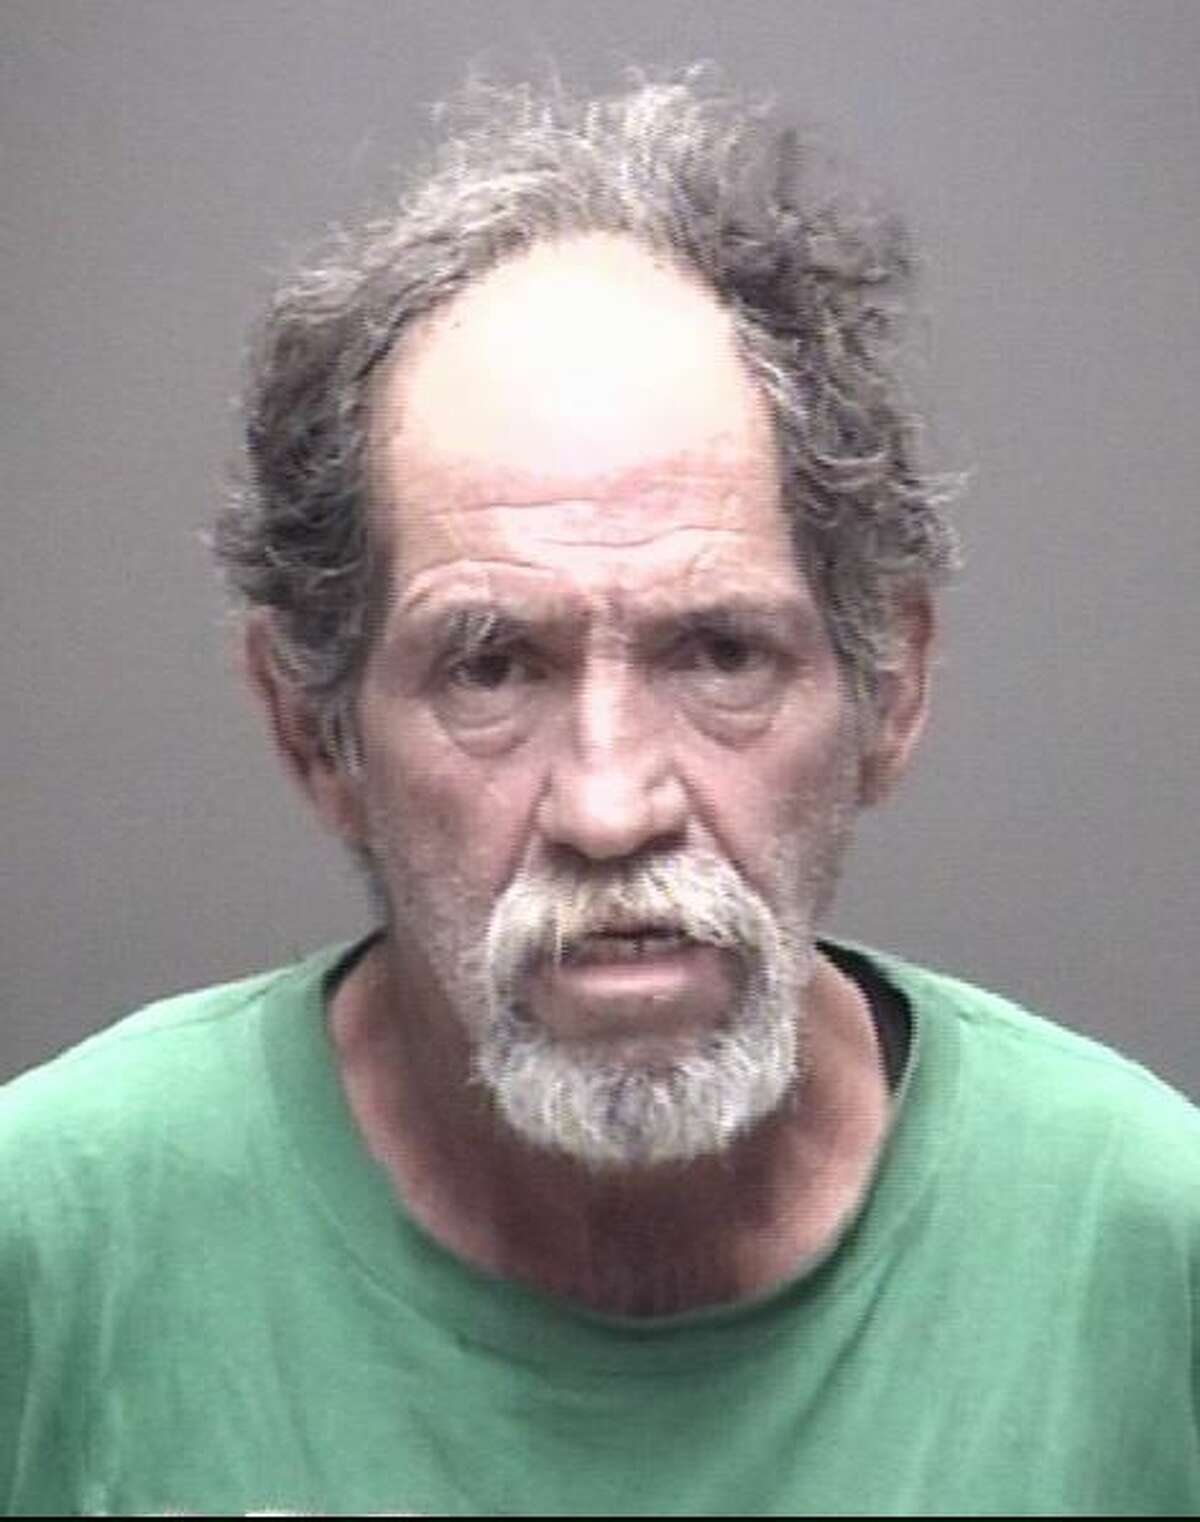 Charles Carrasco was arrested on a third or more charge of DWI.